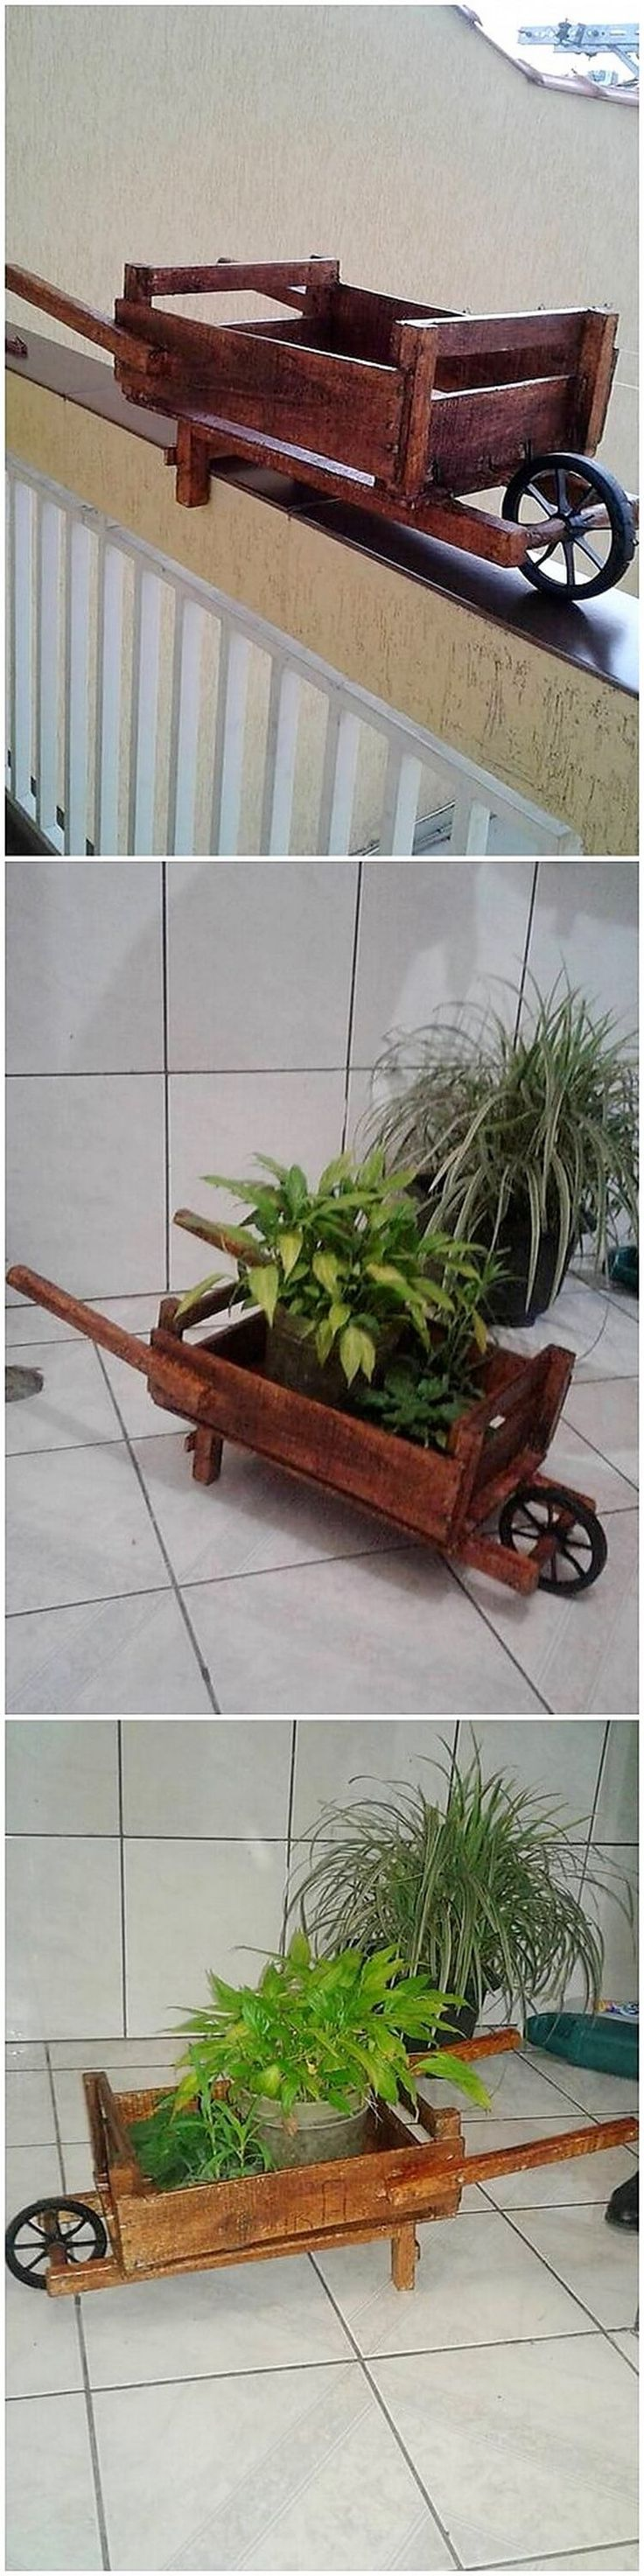 On the last on our list we have wood pallet amazing wheel barrow planter option. This idea is perfect if you want to give your house garden areas with the best house living in a comfort zone. It is simple and yet a awesome wood pallet planter piece for them in the garden area.